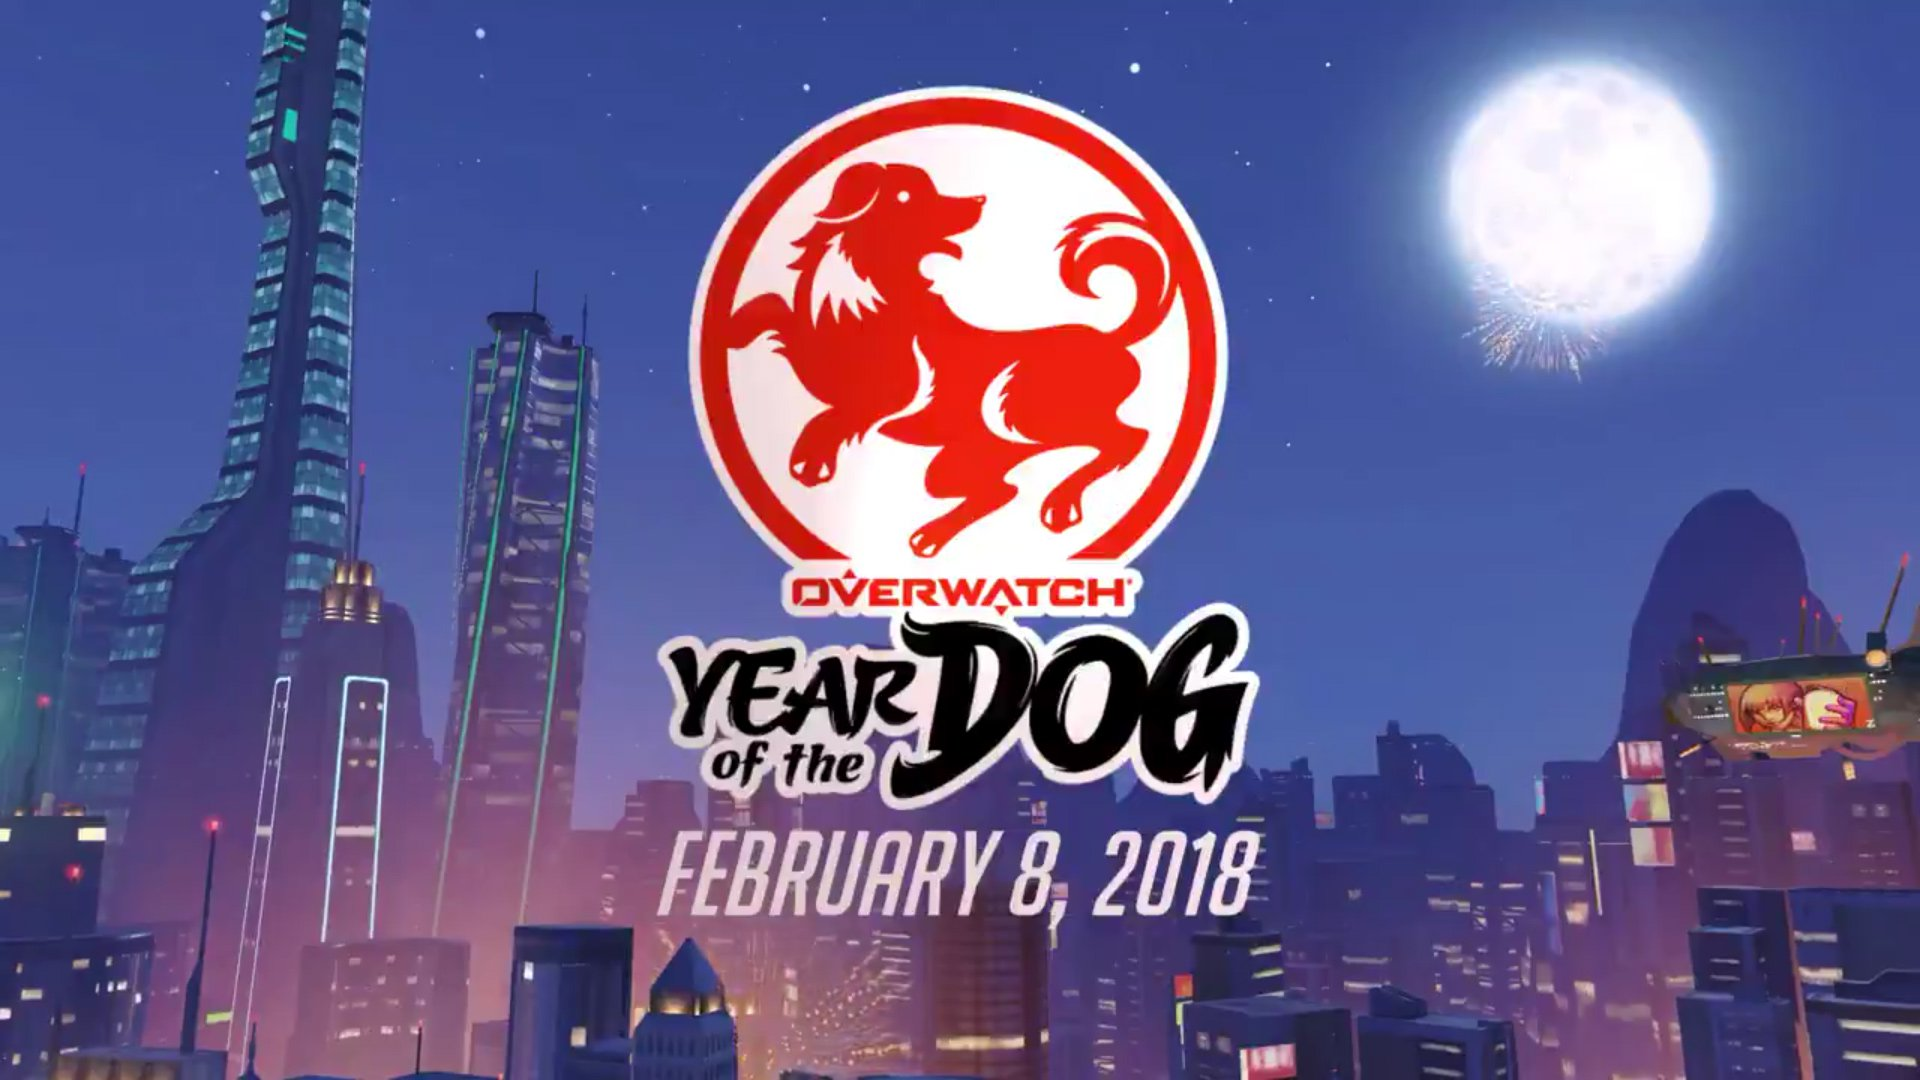 This week's Year of the Dog event in Overwatch will bring a new map screenshot